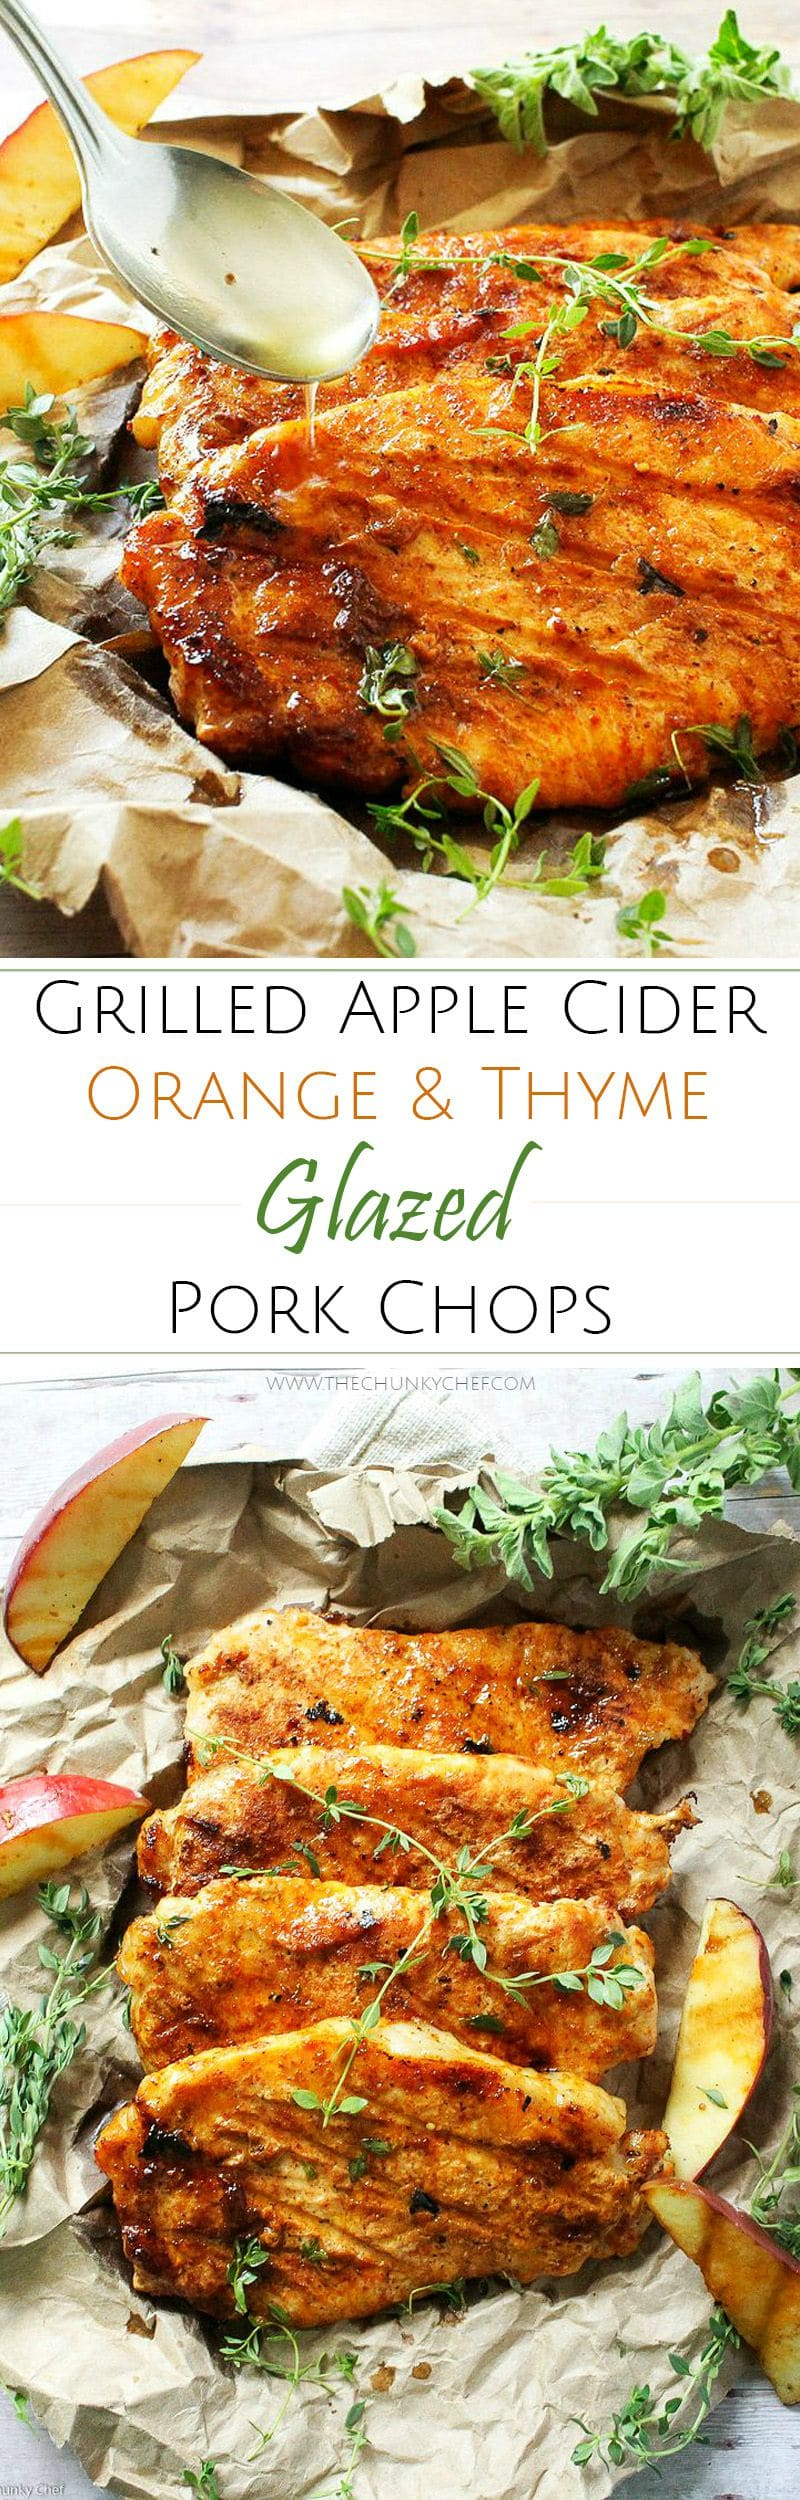 "Apple Cider Orange and Thyme Grilled Pork Chops | The Chunky Chef | Summer meets Fall in these apple cider orange and thyme grilled pork chops.. deliciously juicy and tender with a finger-licking glaze! A ""must try"" recipe!"